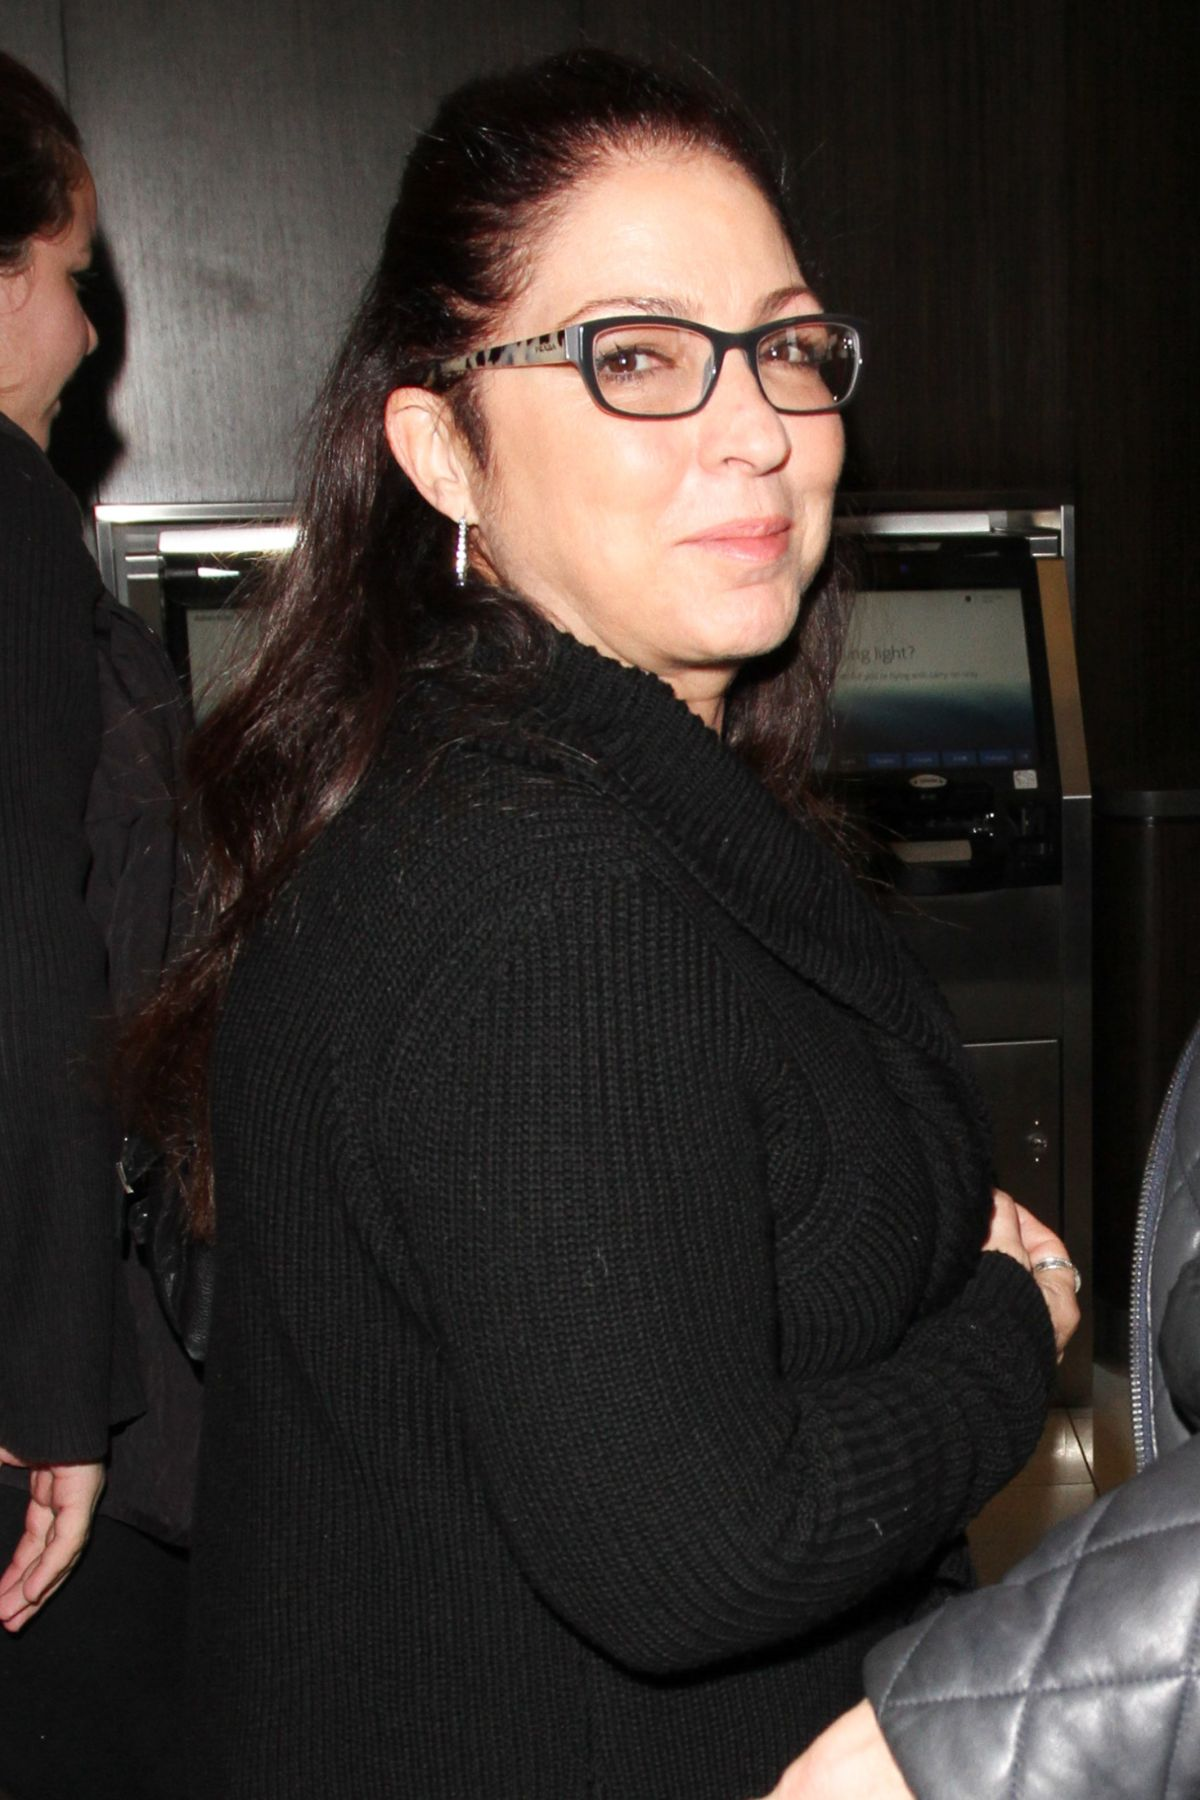 GLORIA ESTEFAN at LAX Airport in Los Angeles 02/17/2017